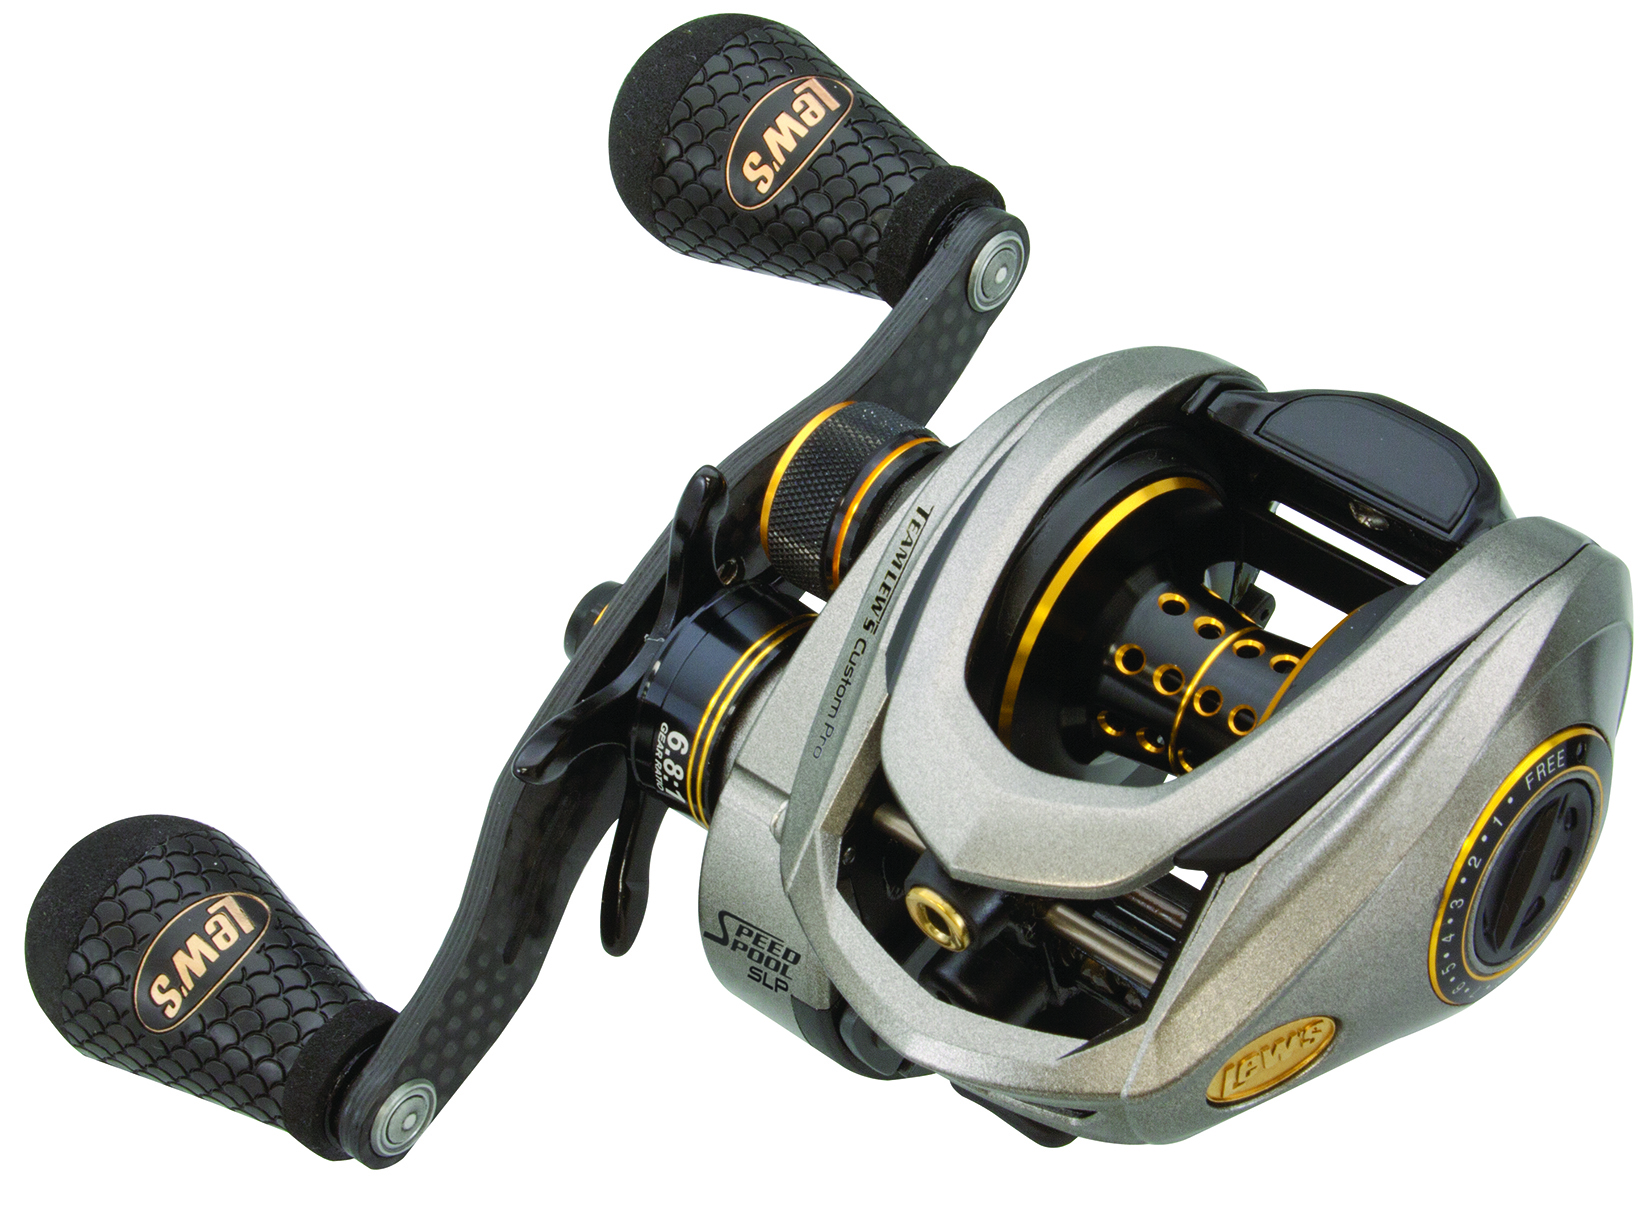 636063336545561080-Team-Lew-s-Custom-Pro-SLP-Reel.jpg